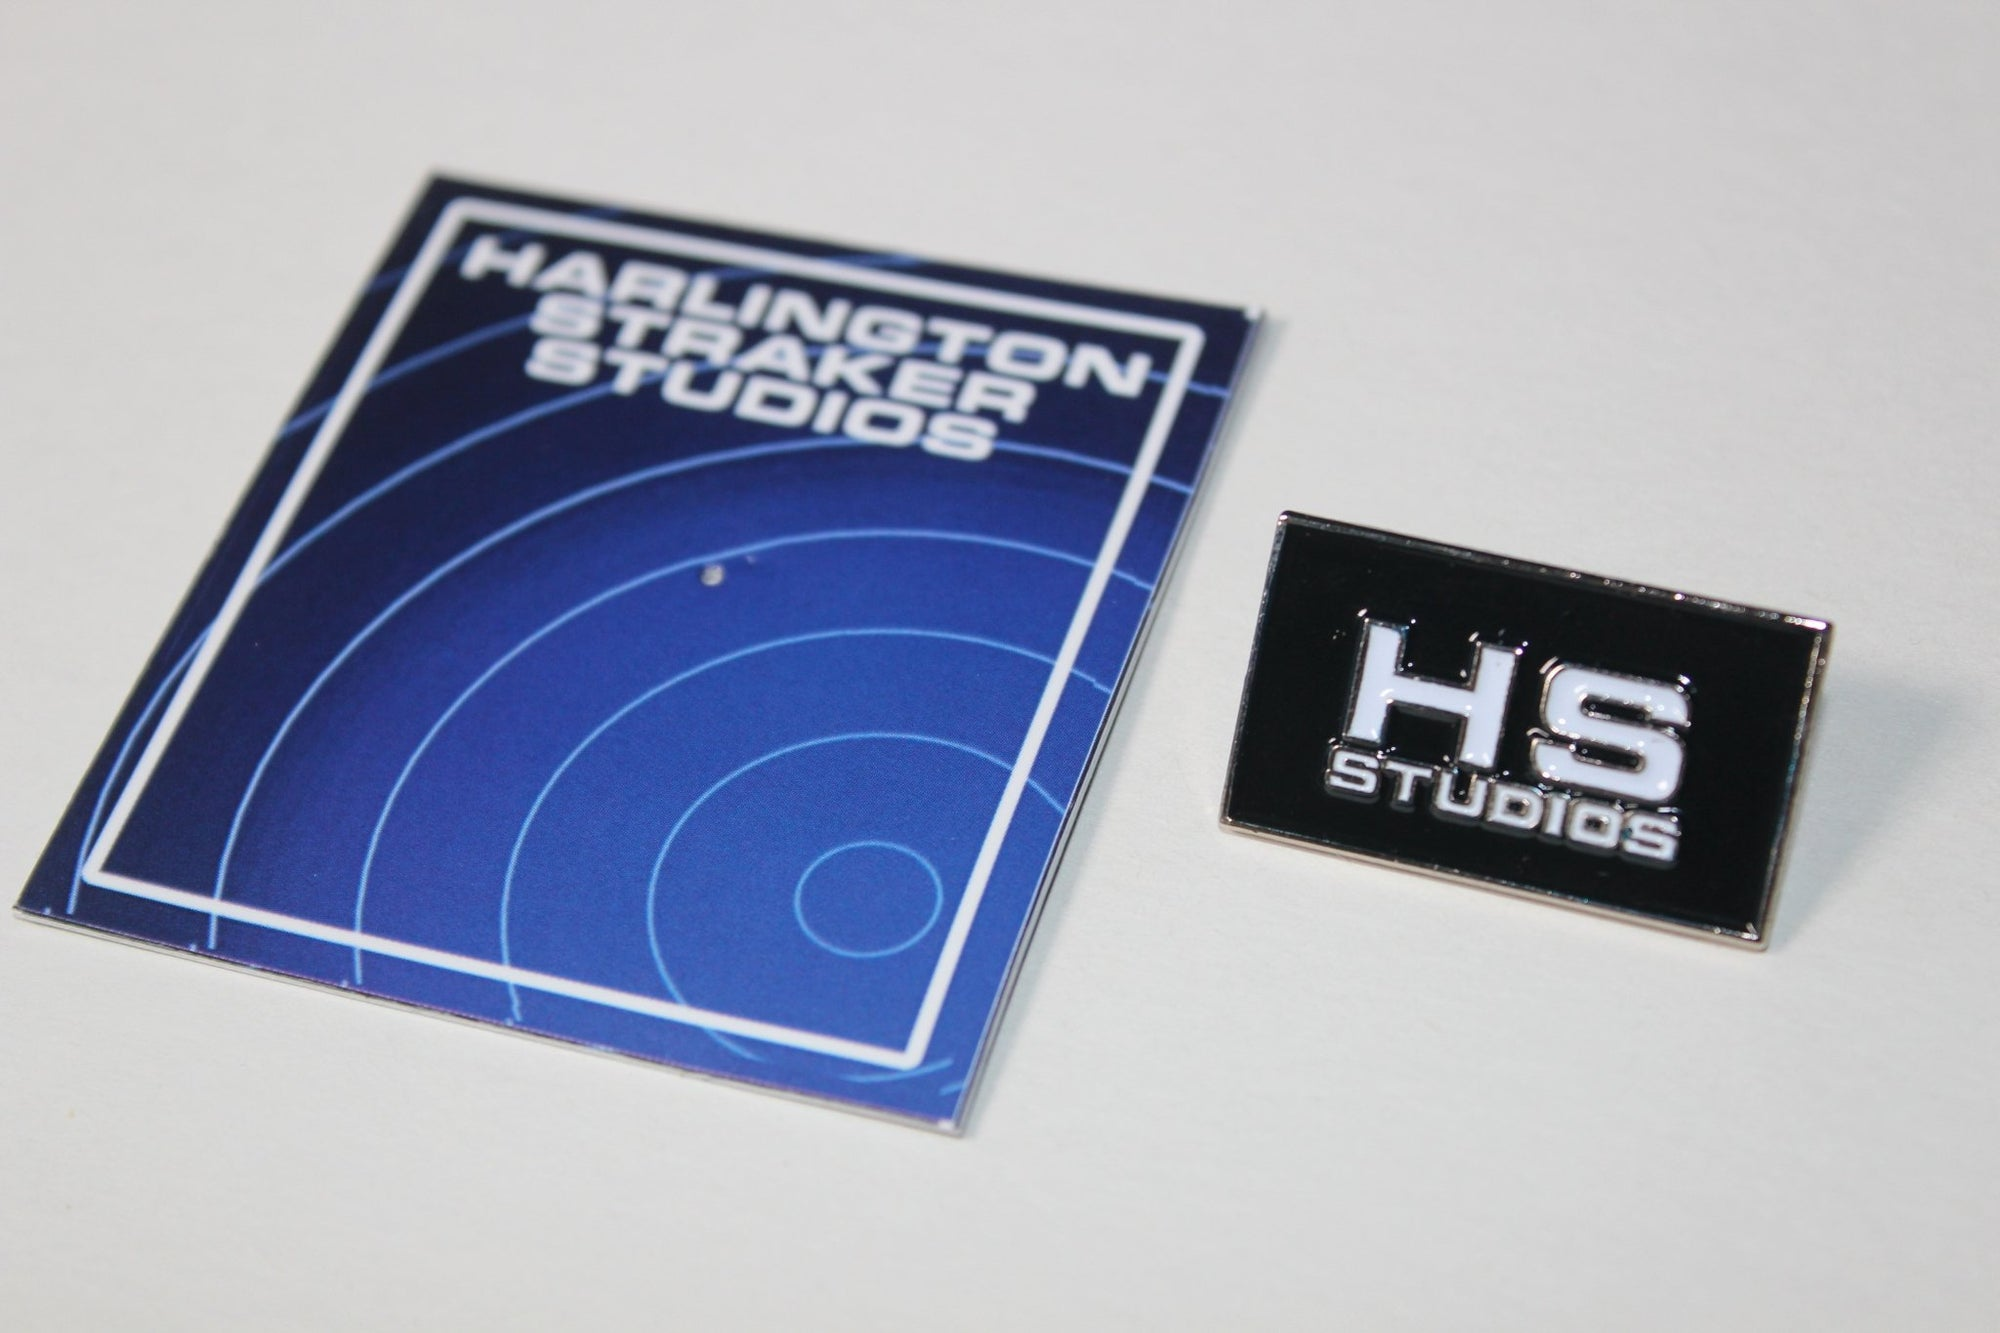 Harlington-Straker Studios Pin Badge - The Gerry Anderson Store